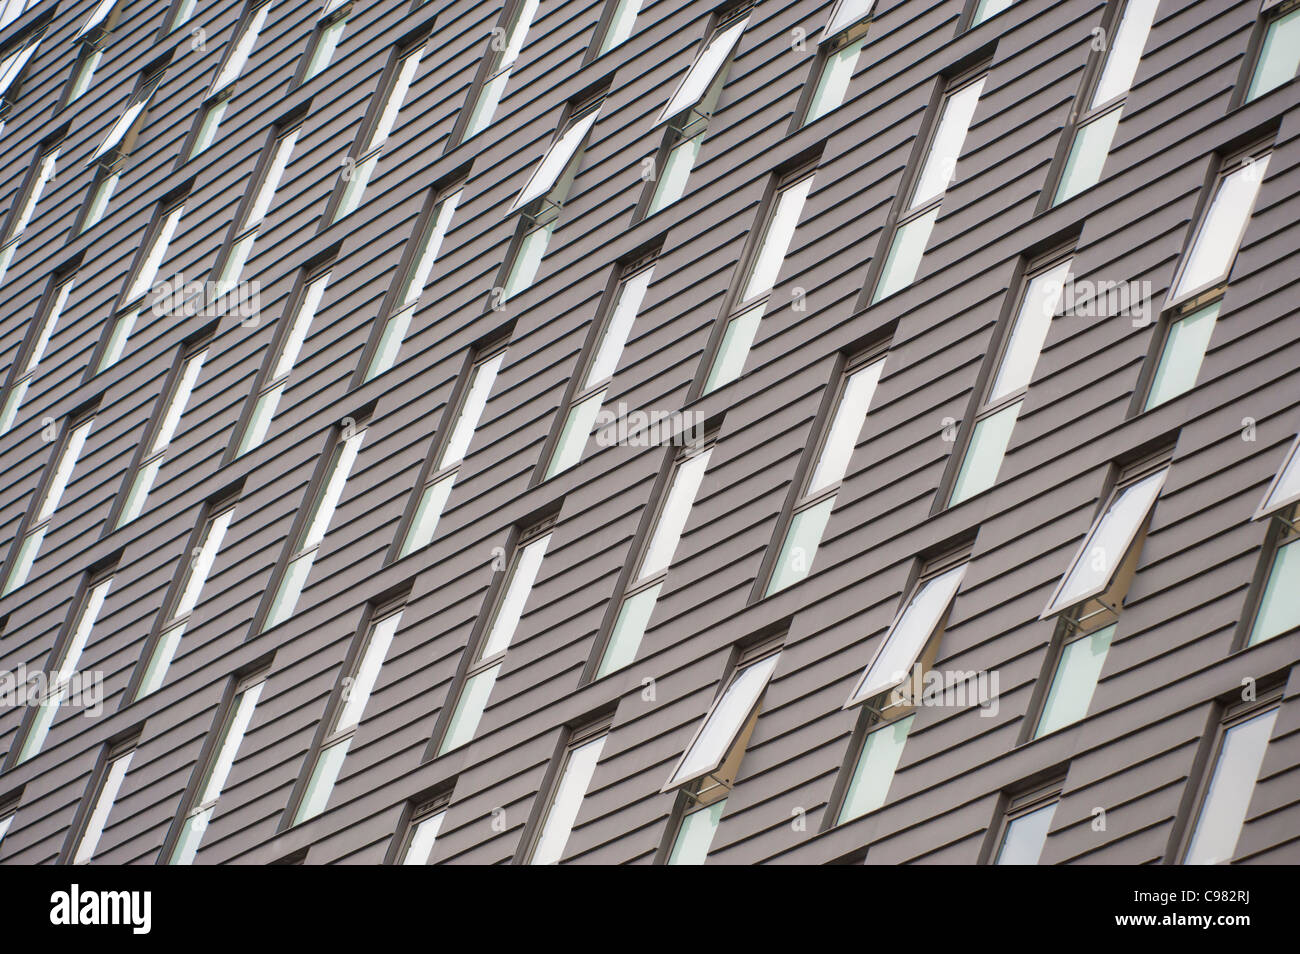 A diagonal shot of the grid rooms at a Univeristy of Manchester halls of residence student accommodation (Editorial - Stock Image